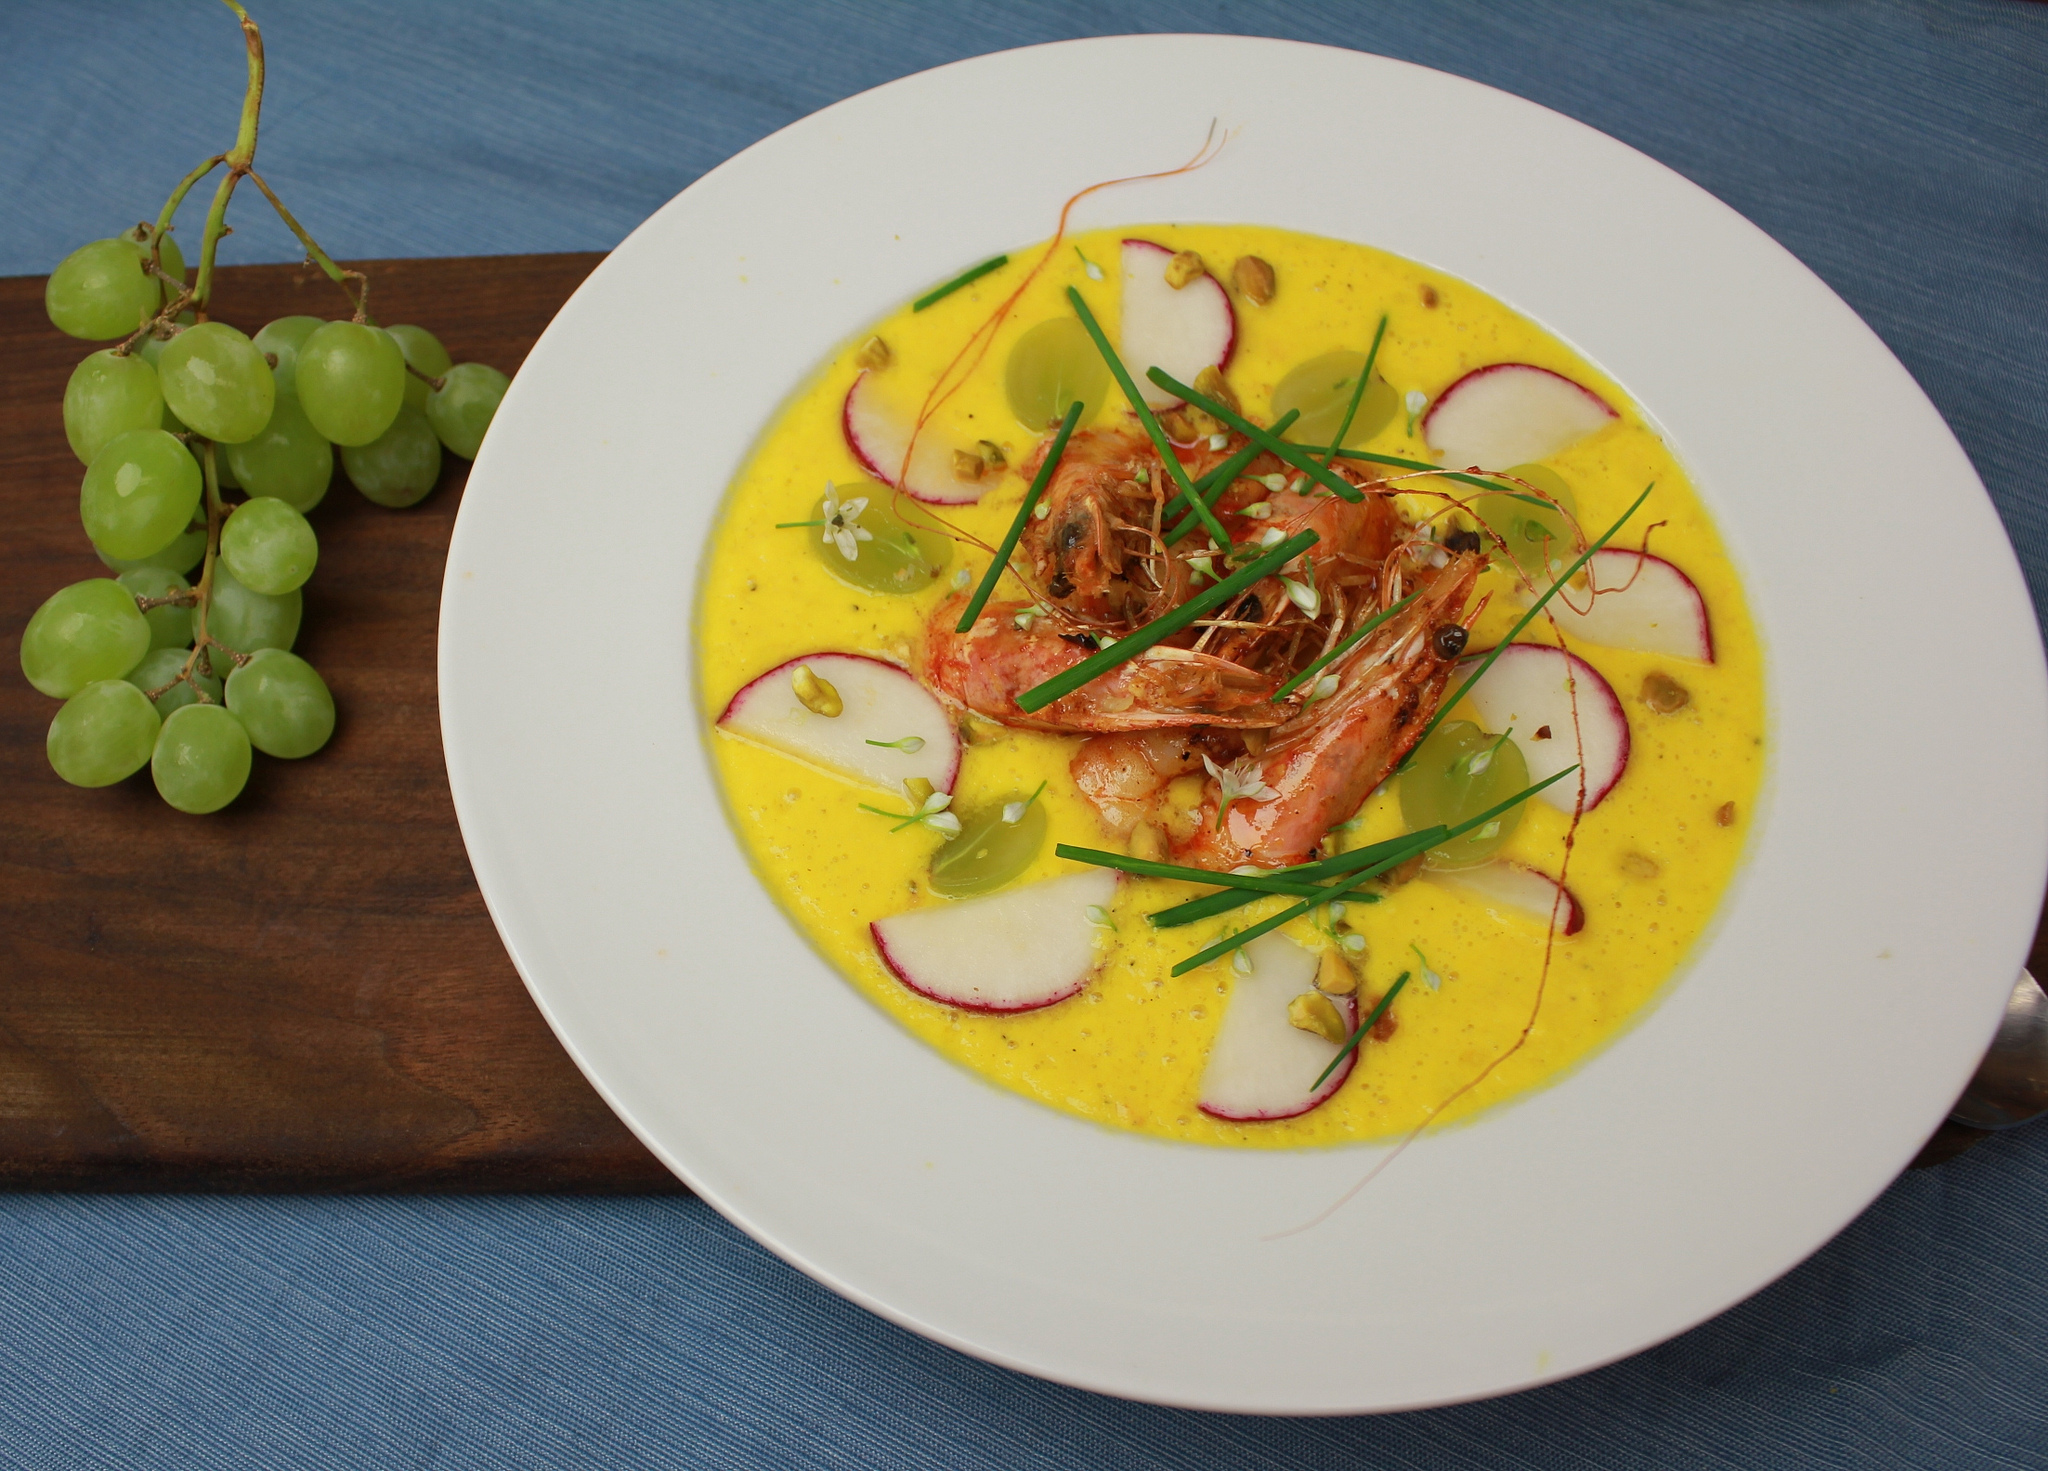 Yellow tomato gazpacho with head-on shrimp al ajillo